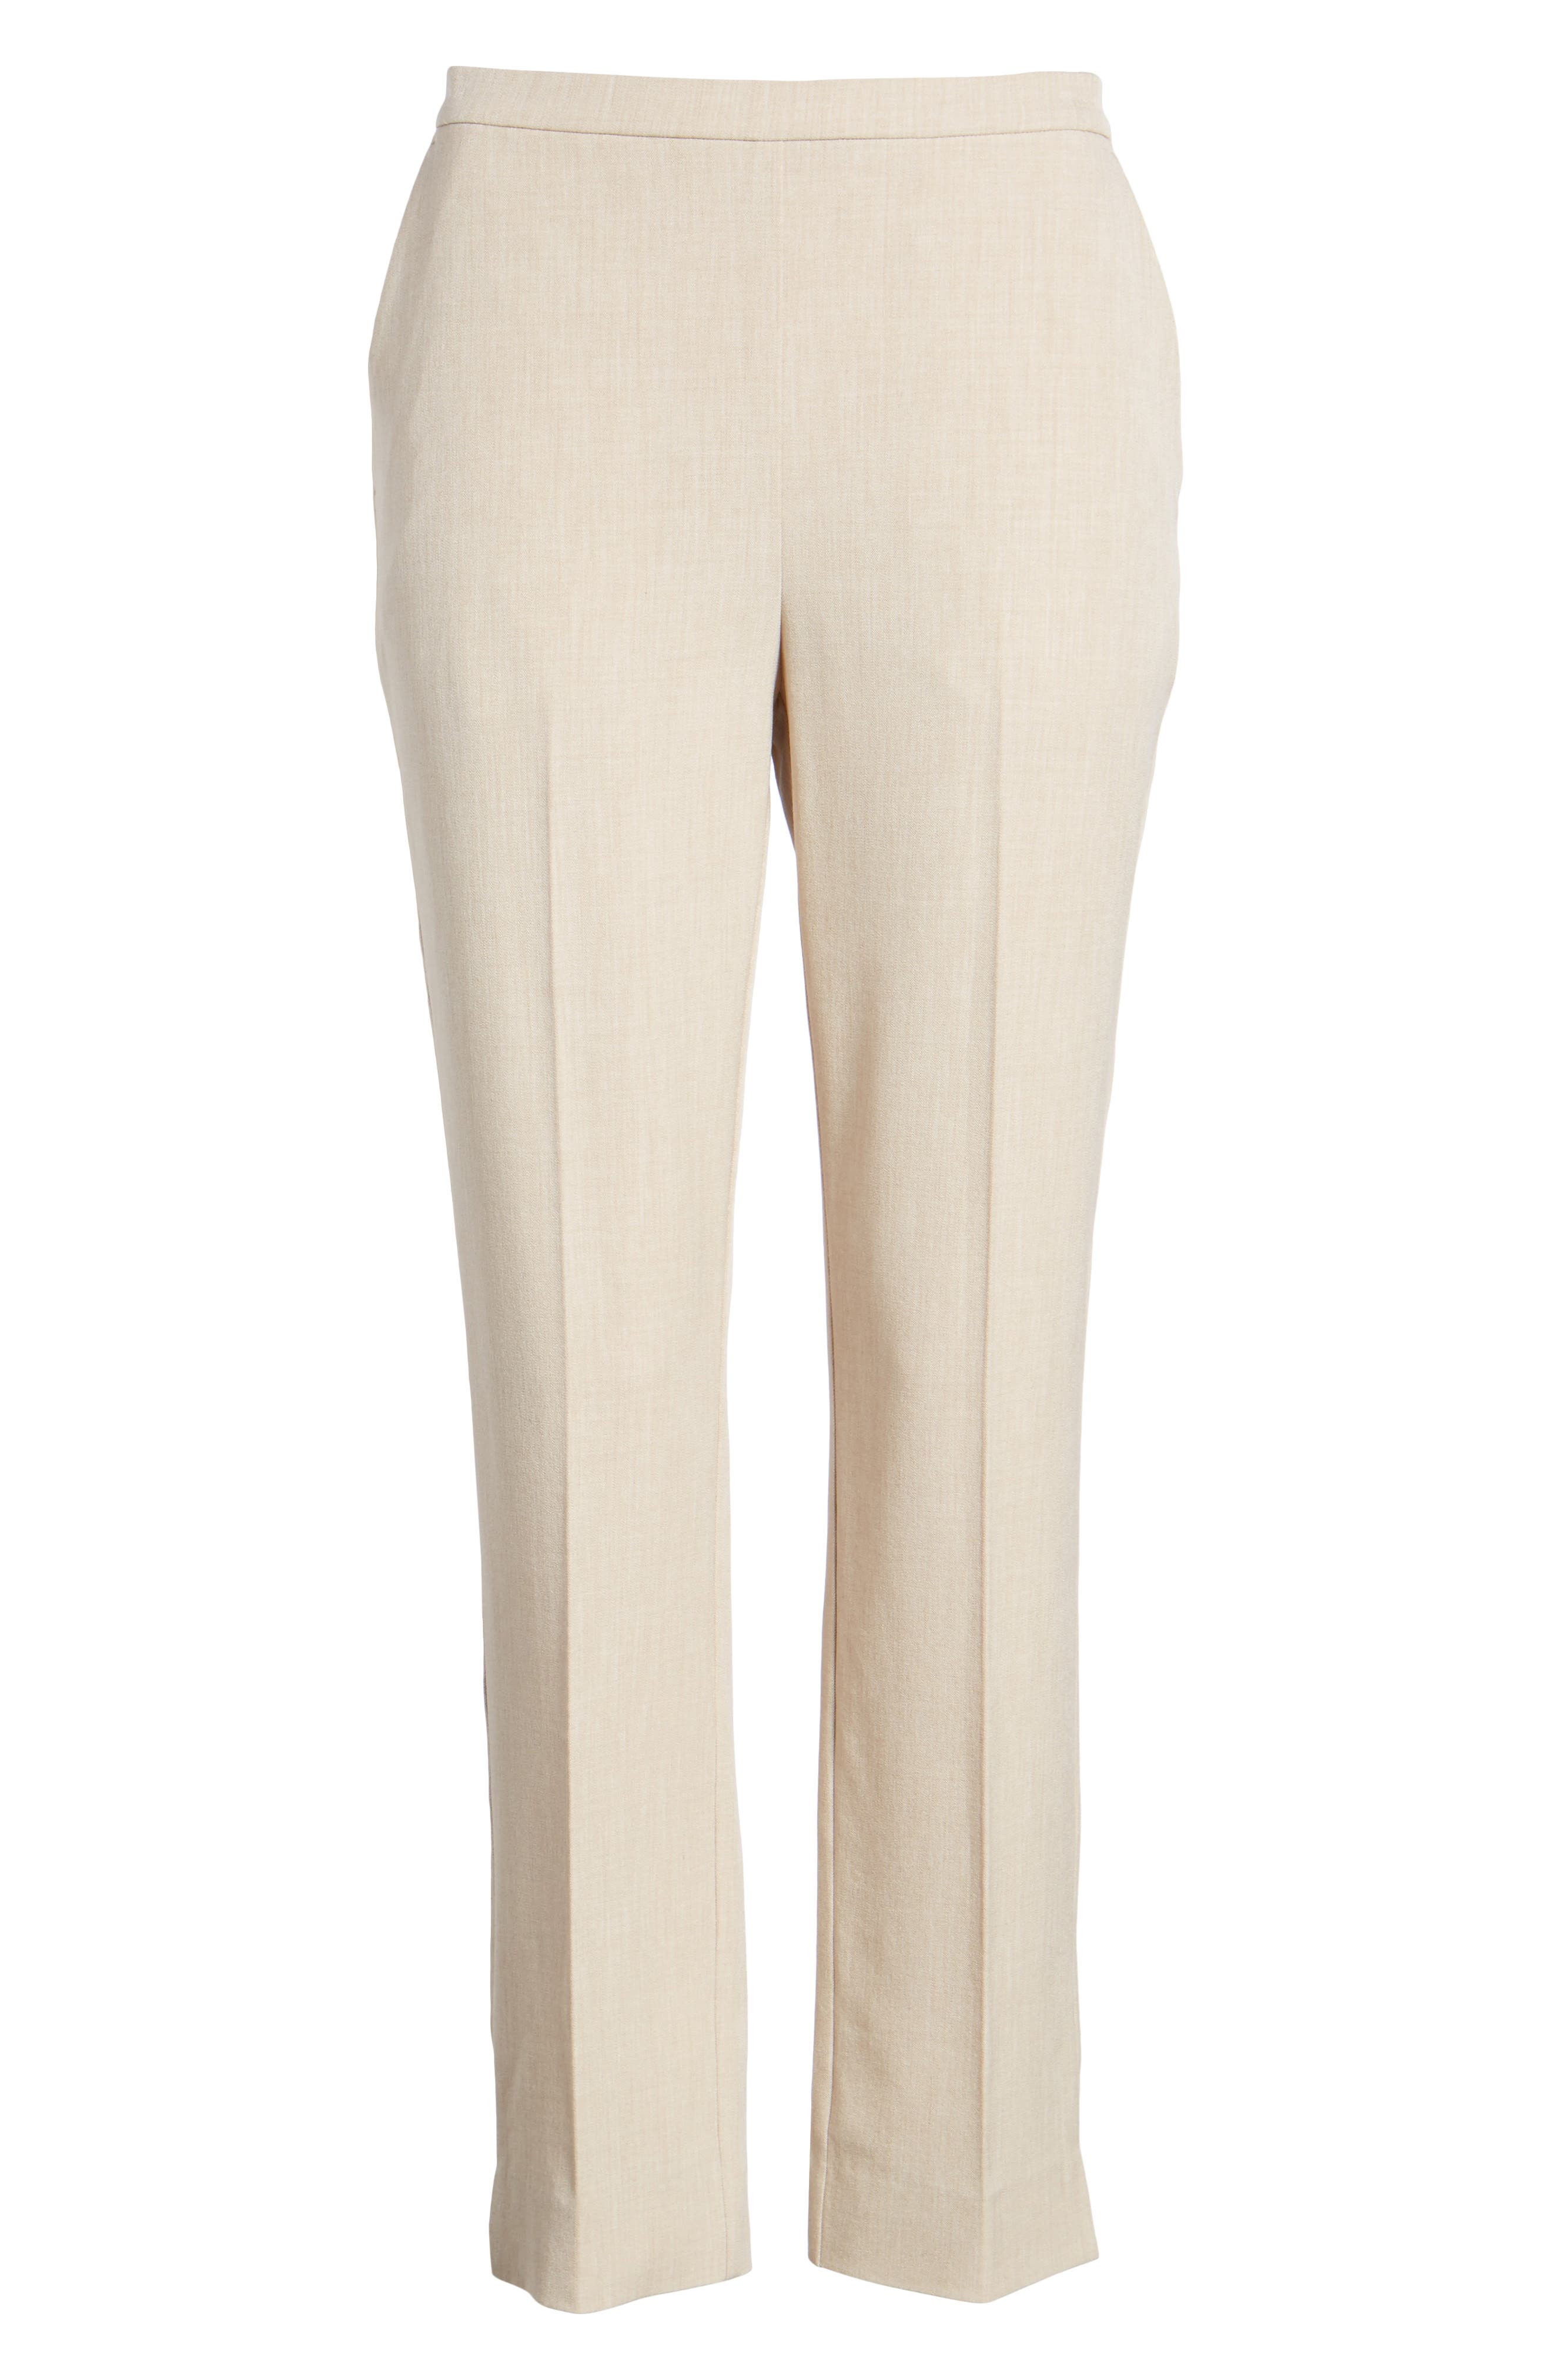 EILEEN FISHER,                             High Waist Tapered Pants,                             Alternate thumbnail 7, color,                             291